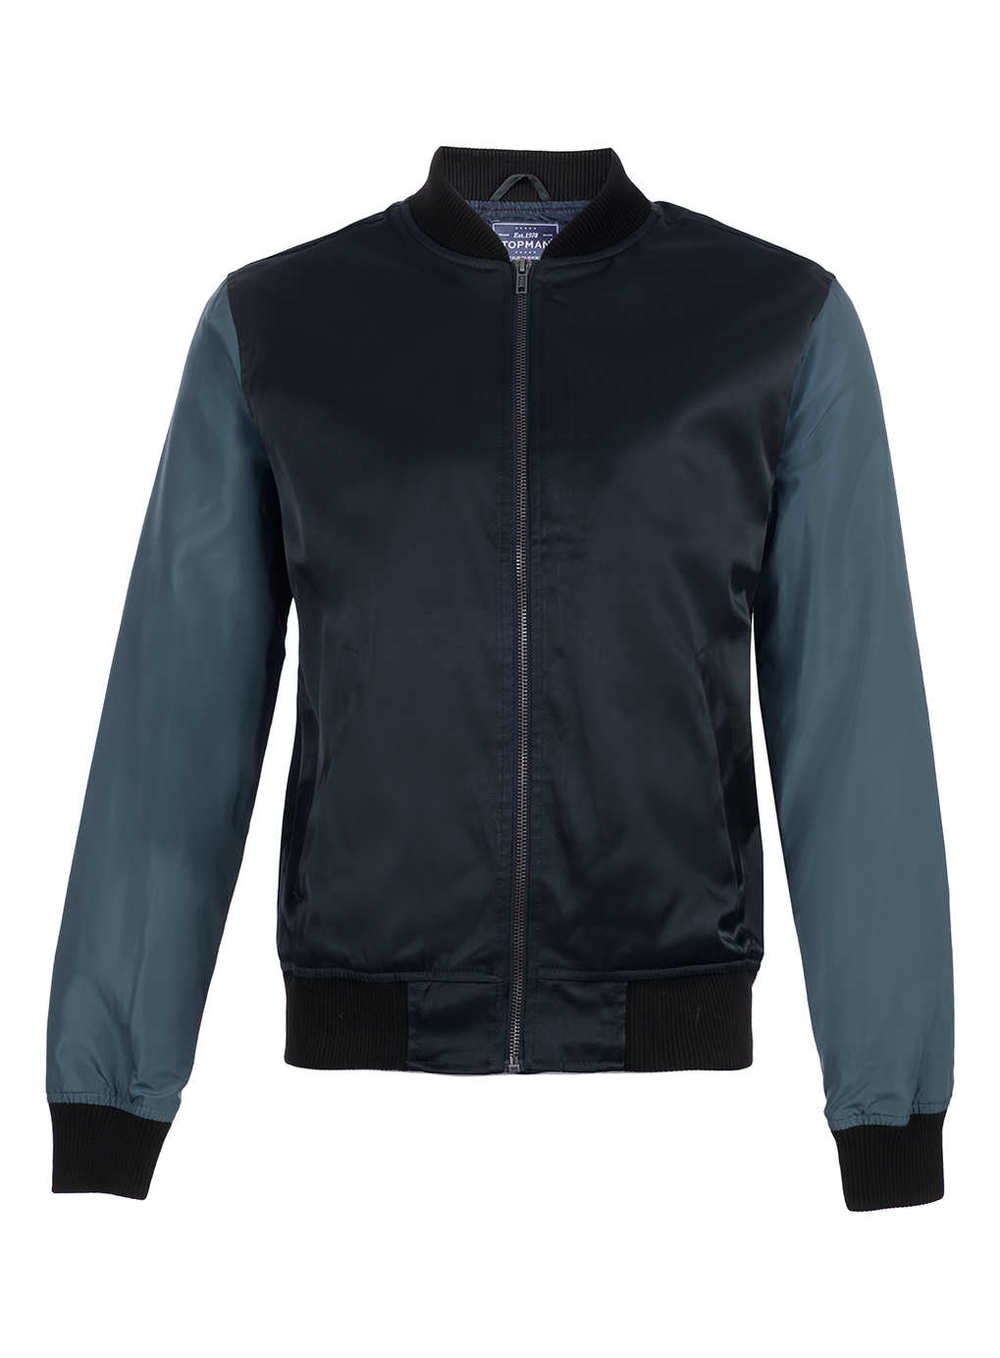 Navy Contrast Sleeve Bomber Jacket, now $50. See Courtney wearing a similar one!